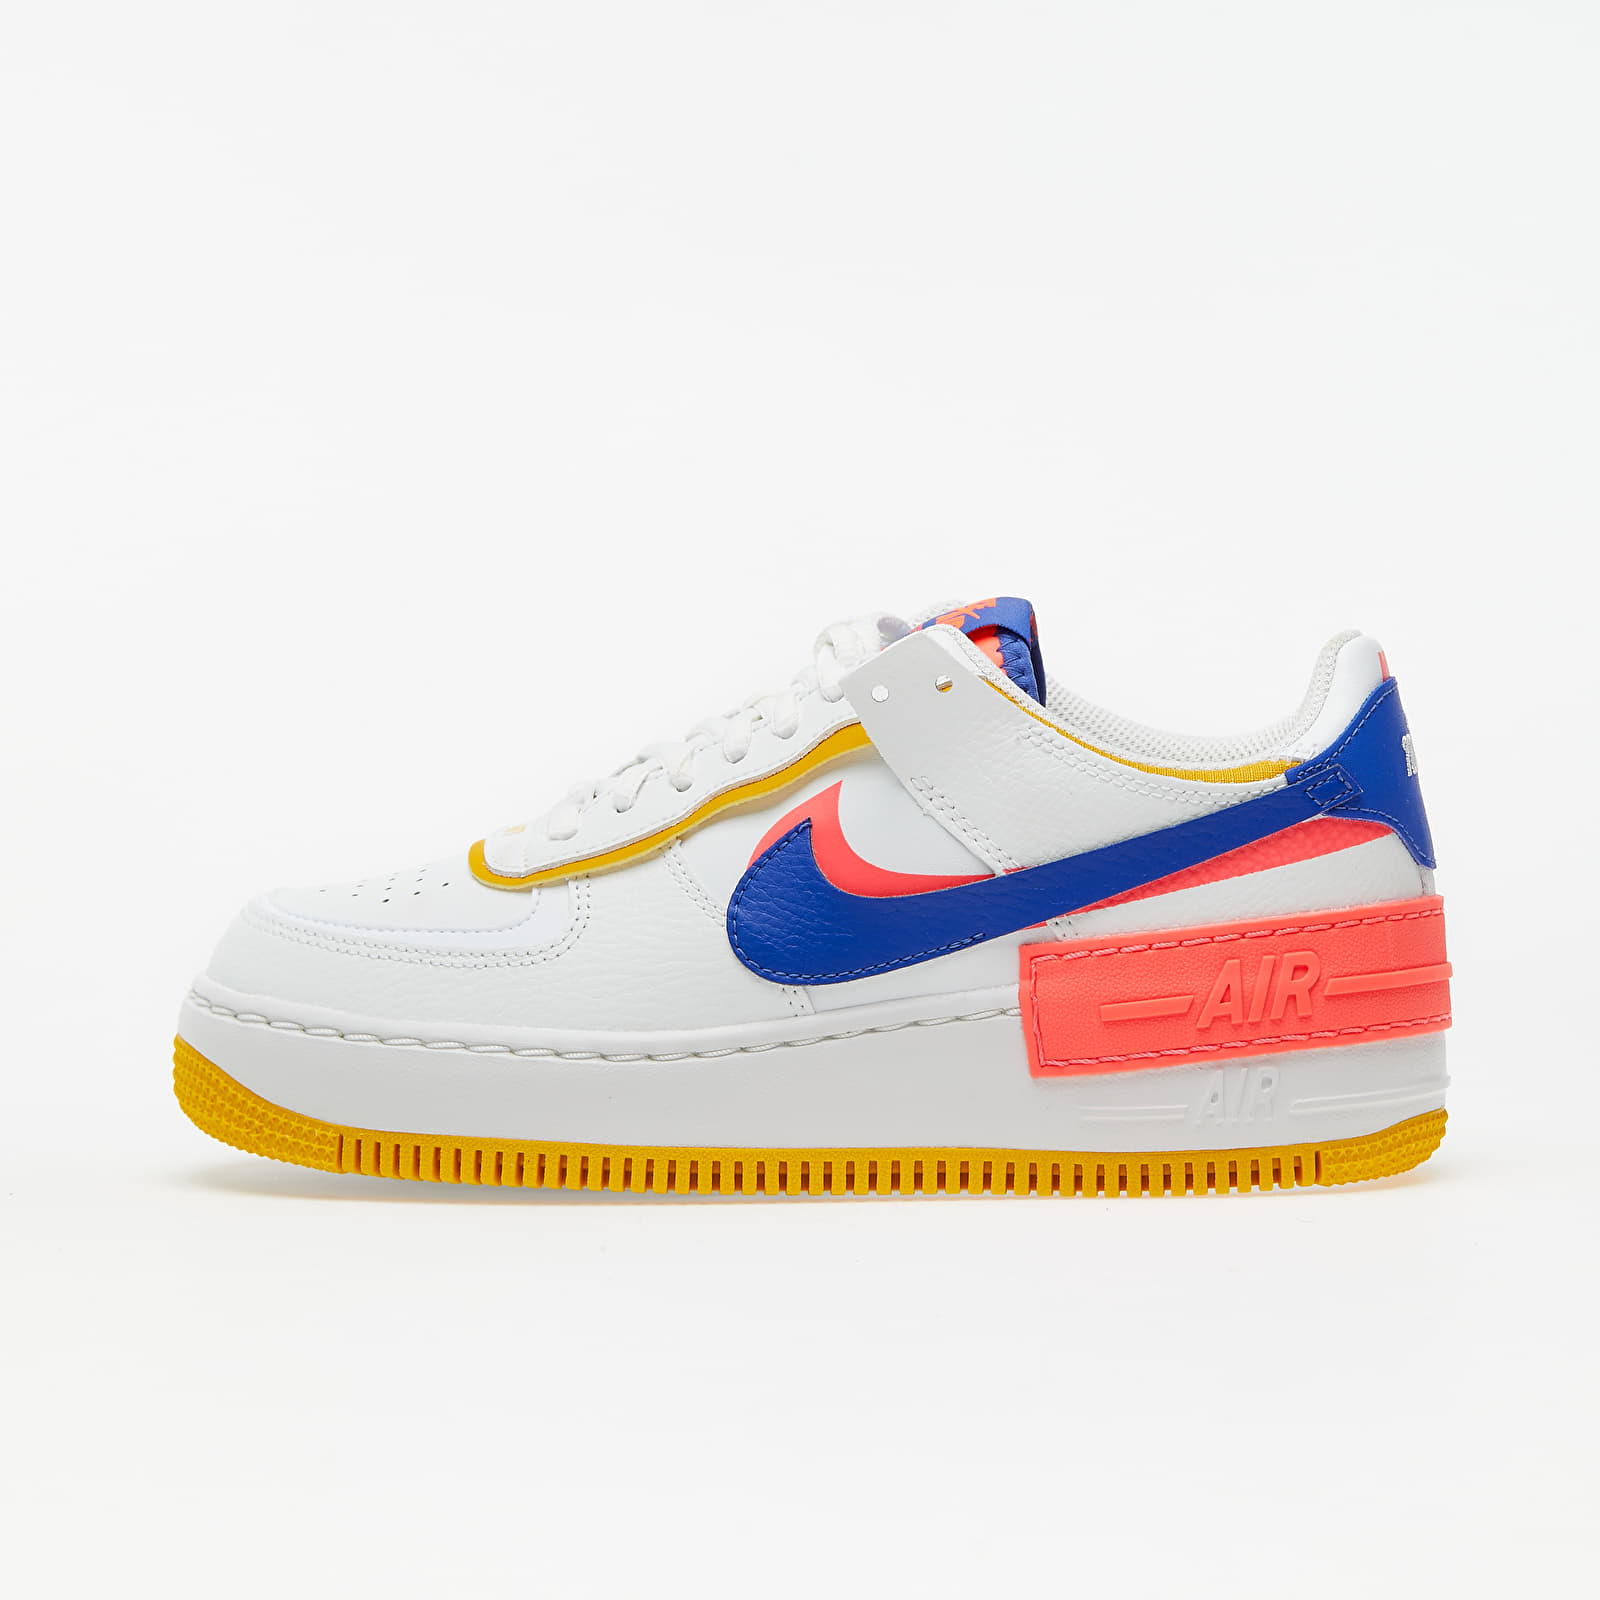 Women S Shoes Nike W Air Force 1 Shadow Summit White Astronomy Blue Footshop Nike's latest air force 1 shadow colorway might be the best one yet: nike w air force 1 shadow summit white astronomy blue footshop